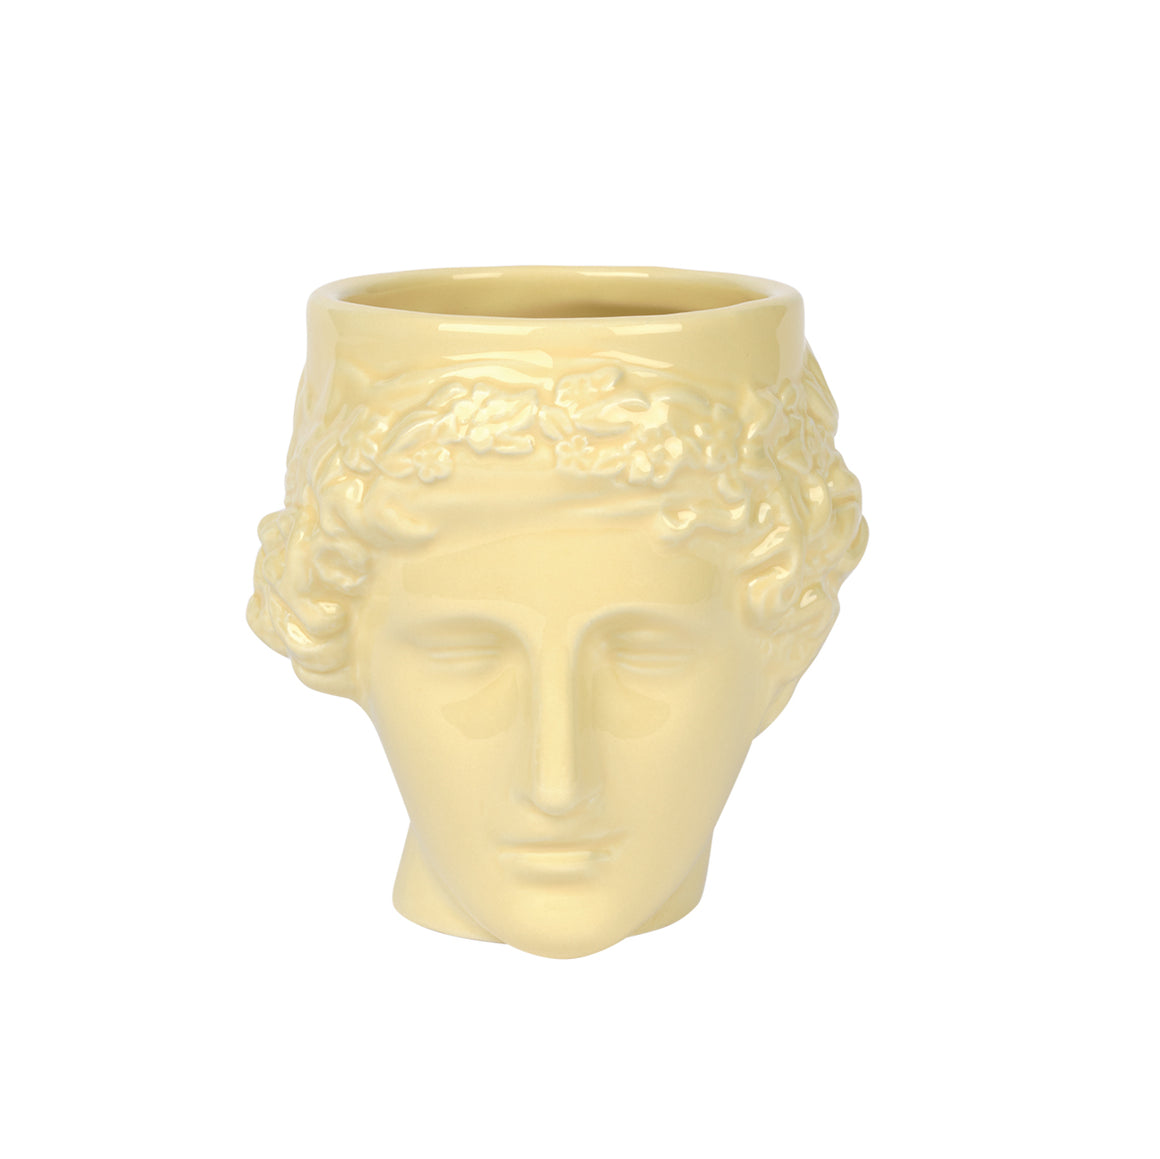 A ceramic mug in the shape of a sculptural portrait of Euphrosyne Goddess of Happiness in pastel yellow.